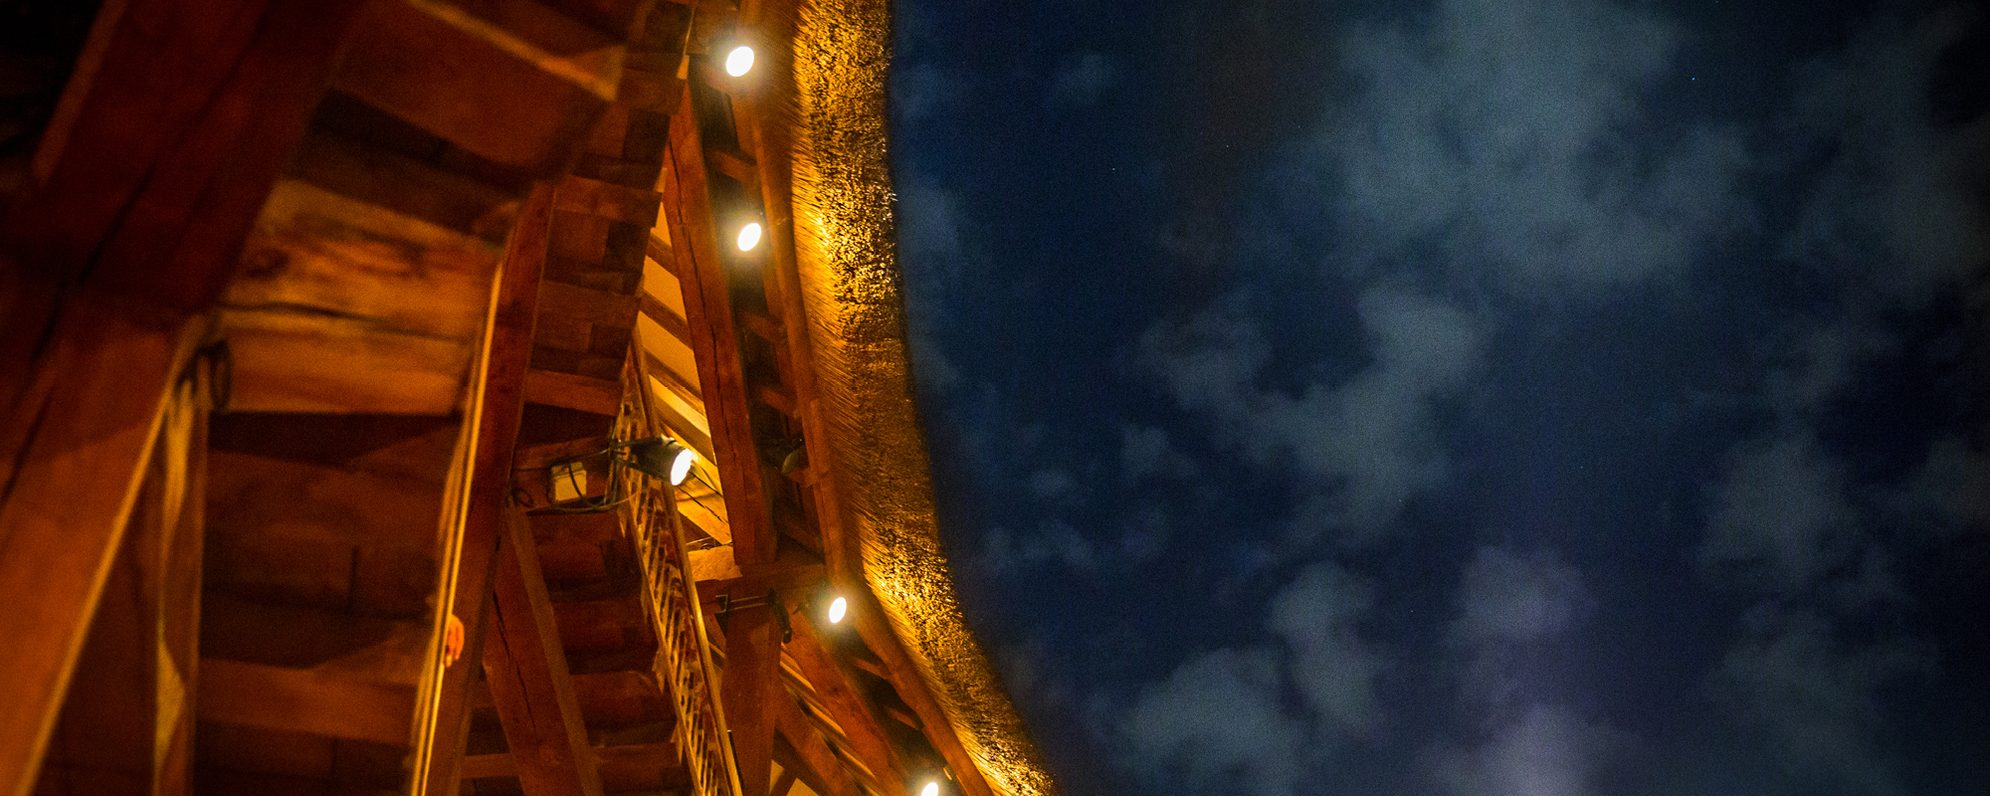 A close up of the corner of a roof of an open-air theatre, that shows an open sky and wooden beams